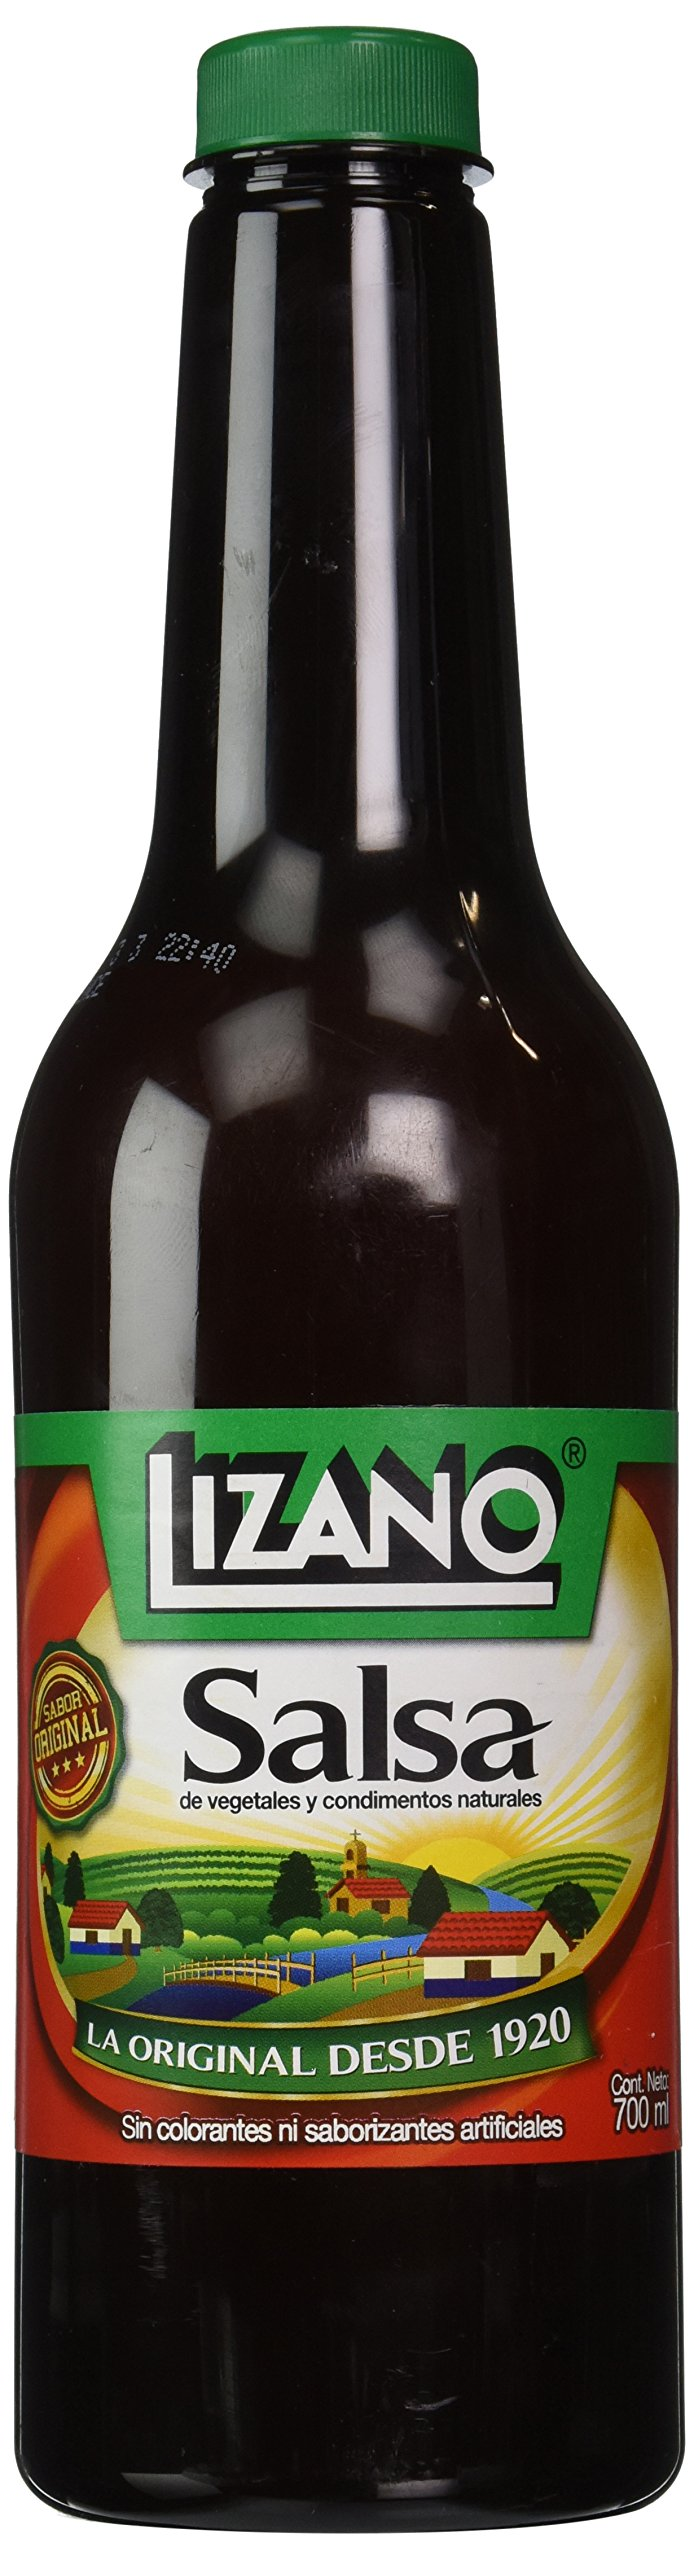 Lizano Salsa, 24.7 Oz | 700ml by Lizano